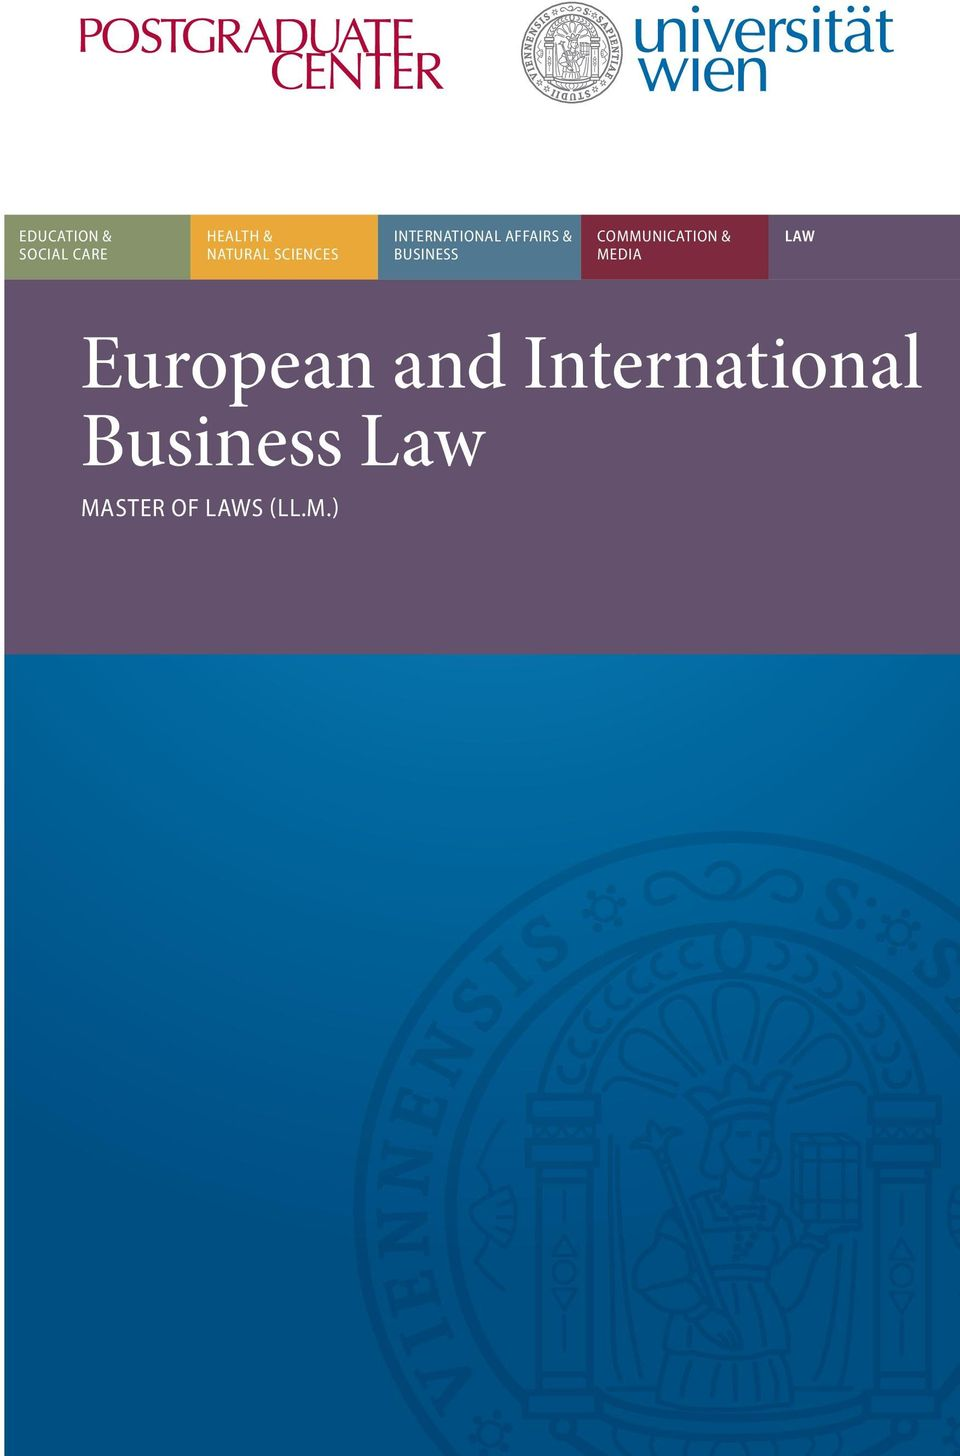 COMMUNICATION & MEDIA LAW European and